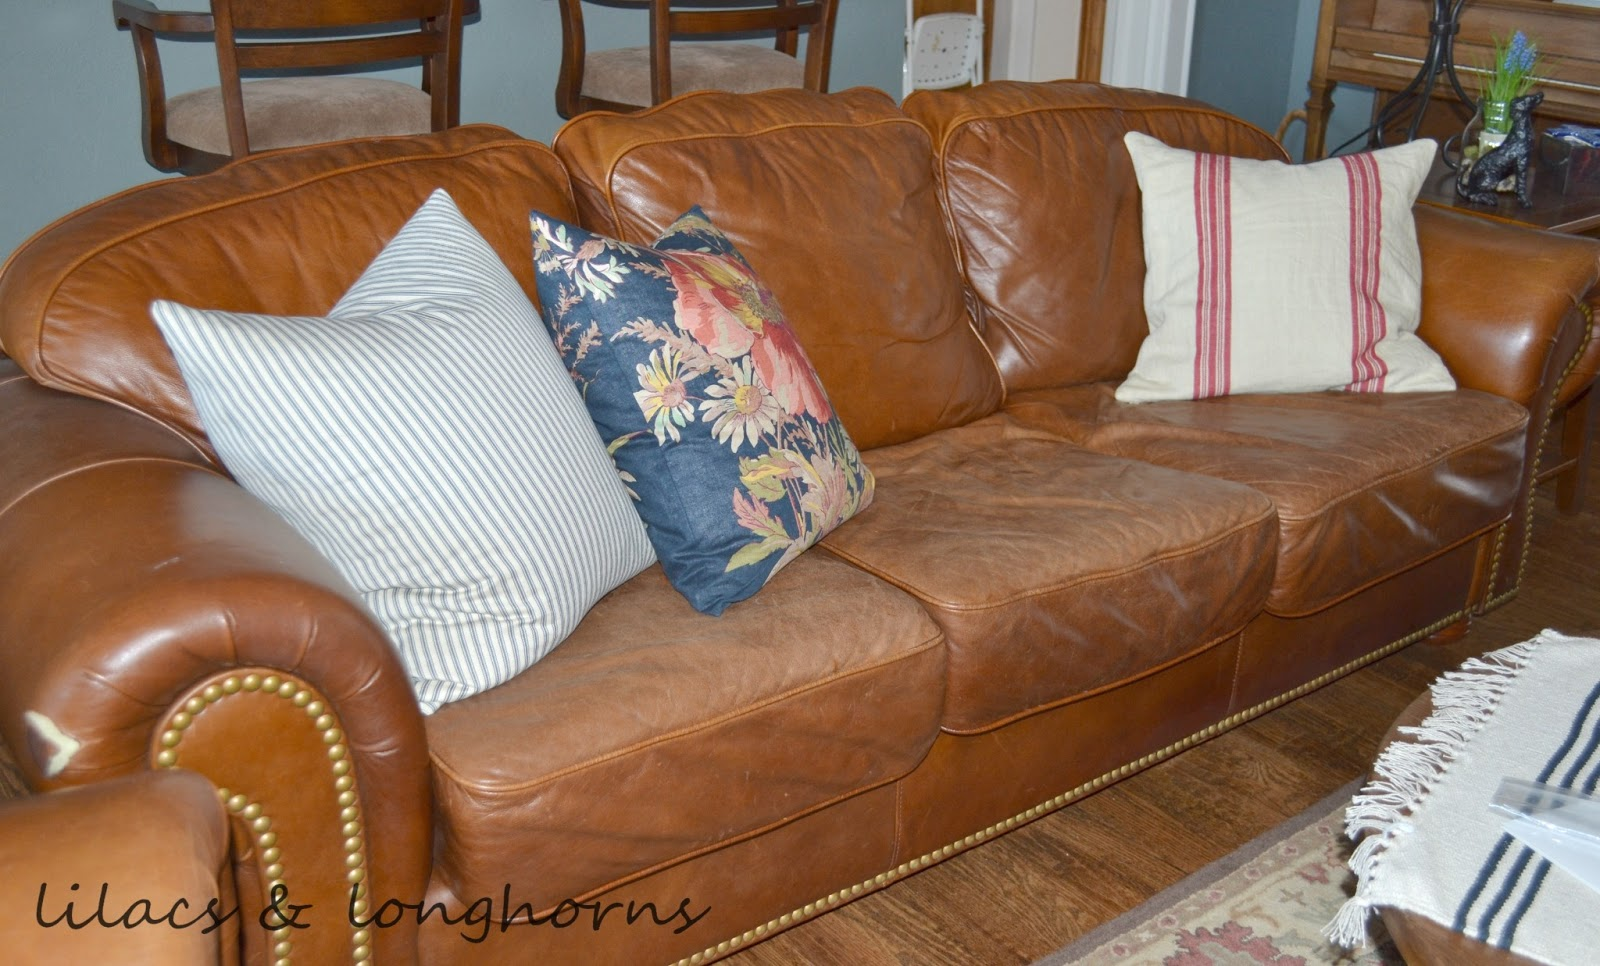 Restoring Leather Sofa Medico Costa Blanca Repairing And Refurbishing Furniture Lilacs